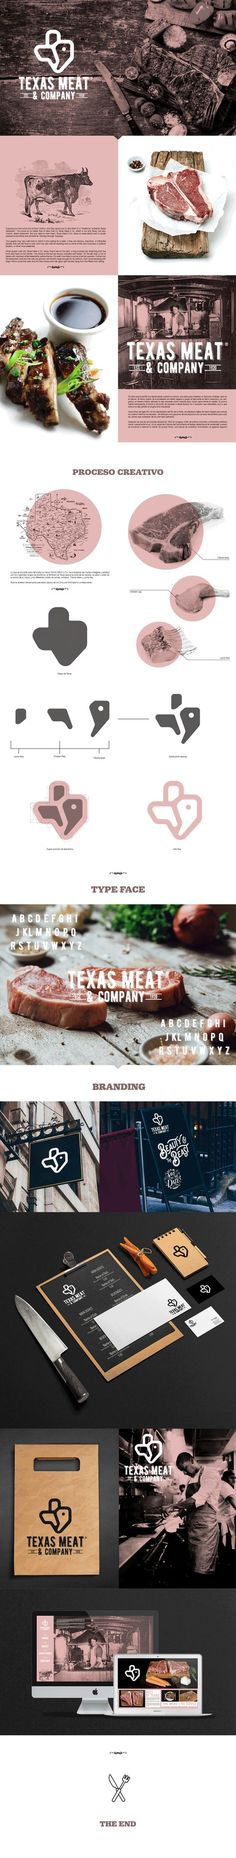 TEXAS MEAT & COMPANY on Behance                                                                                                                                                                                 Mais